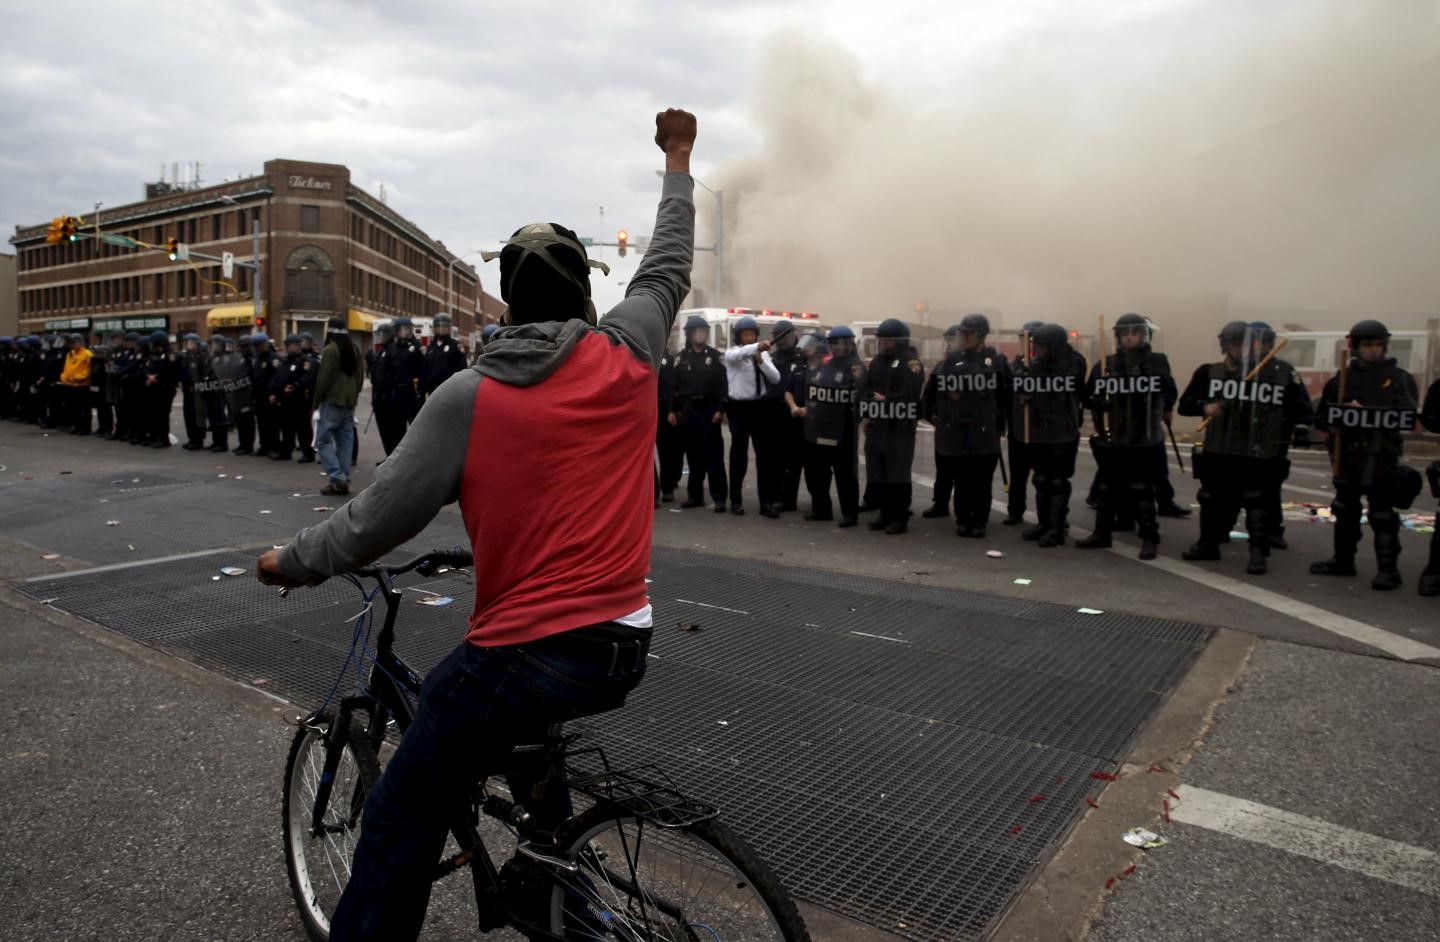 Baltimore Riots after the death of Freddie Gray on 12 April, 2015